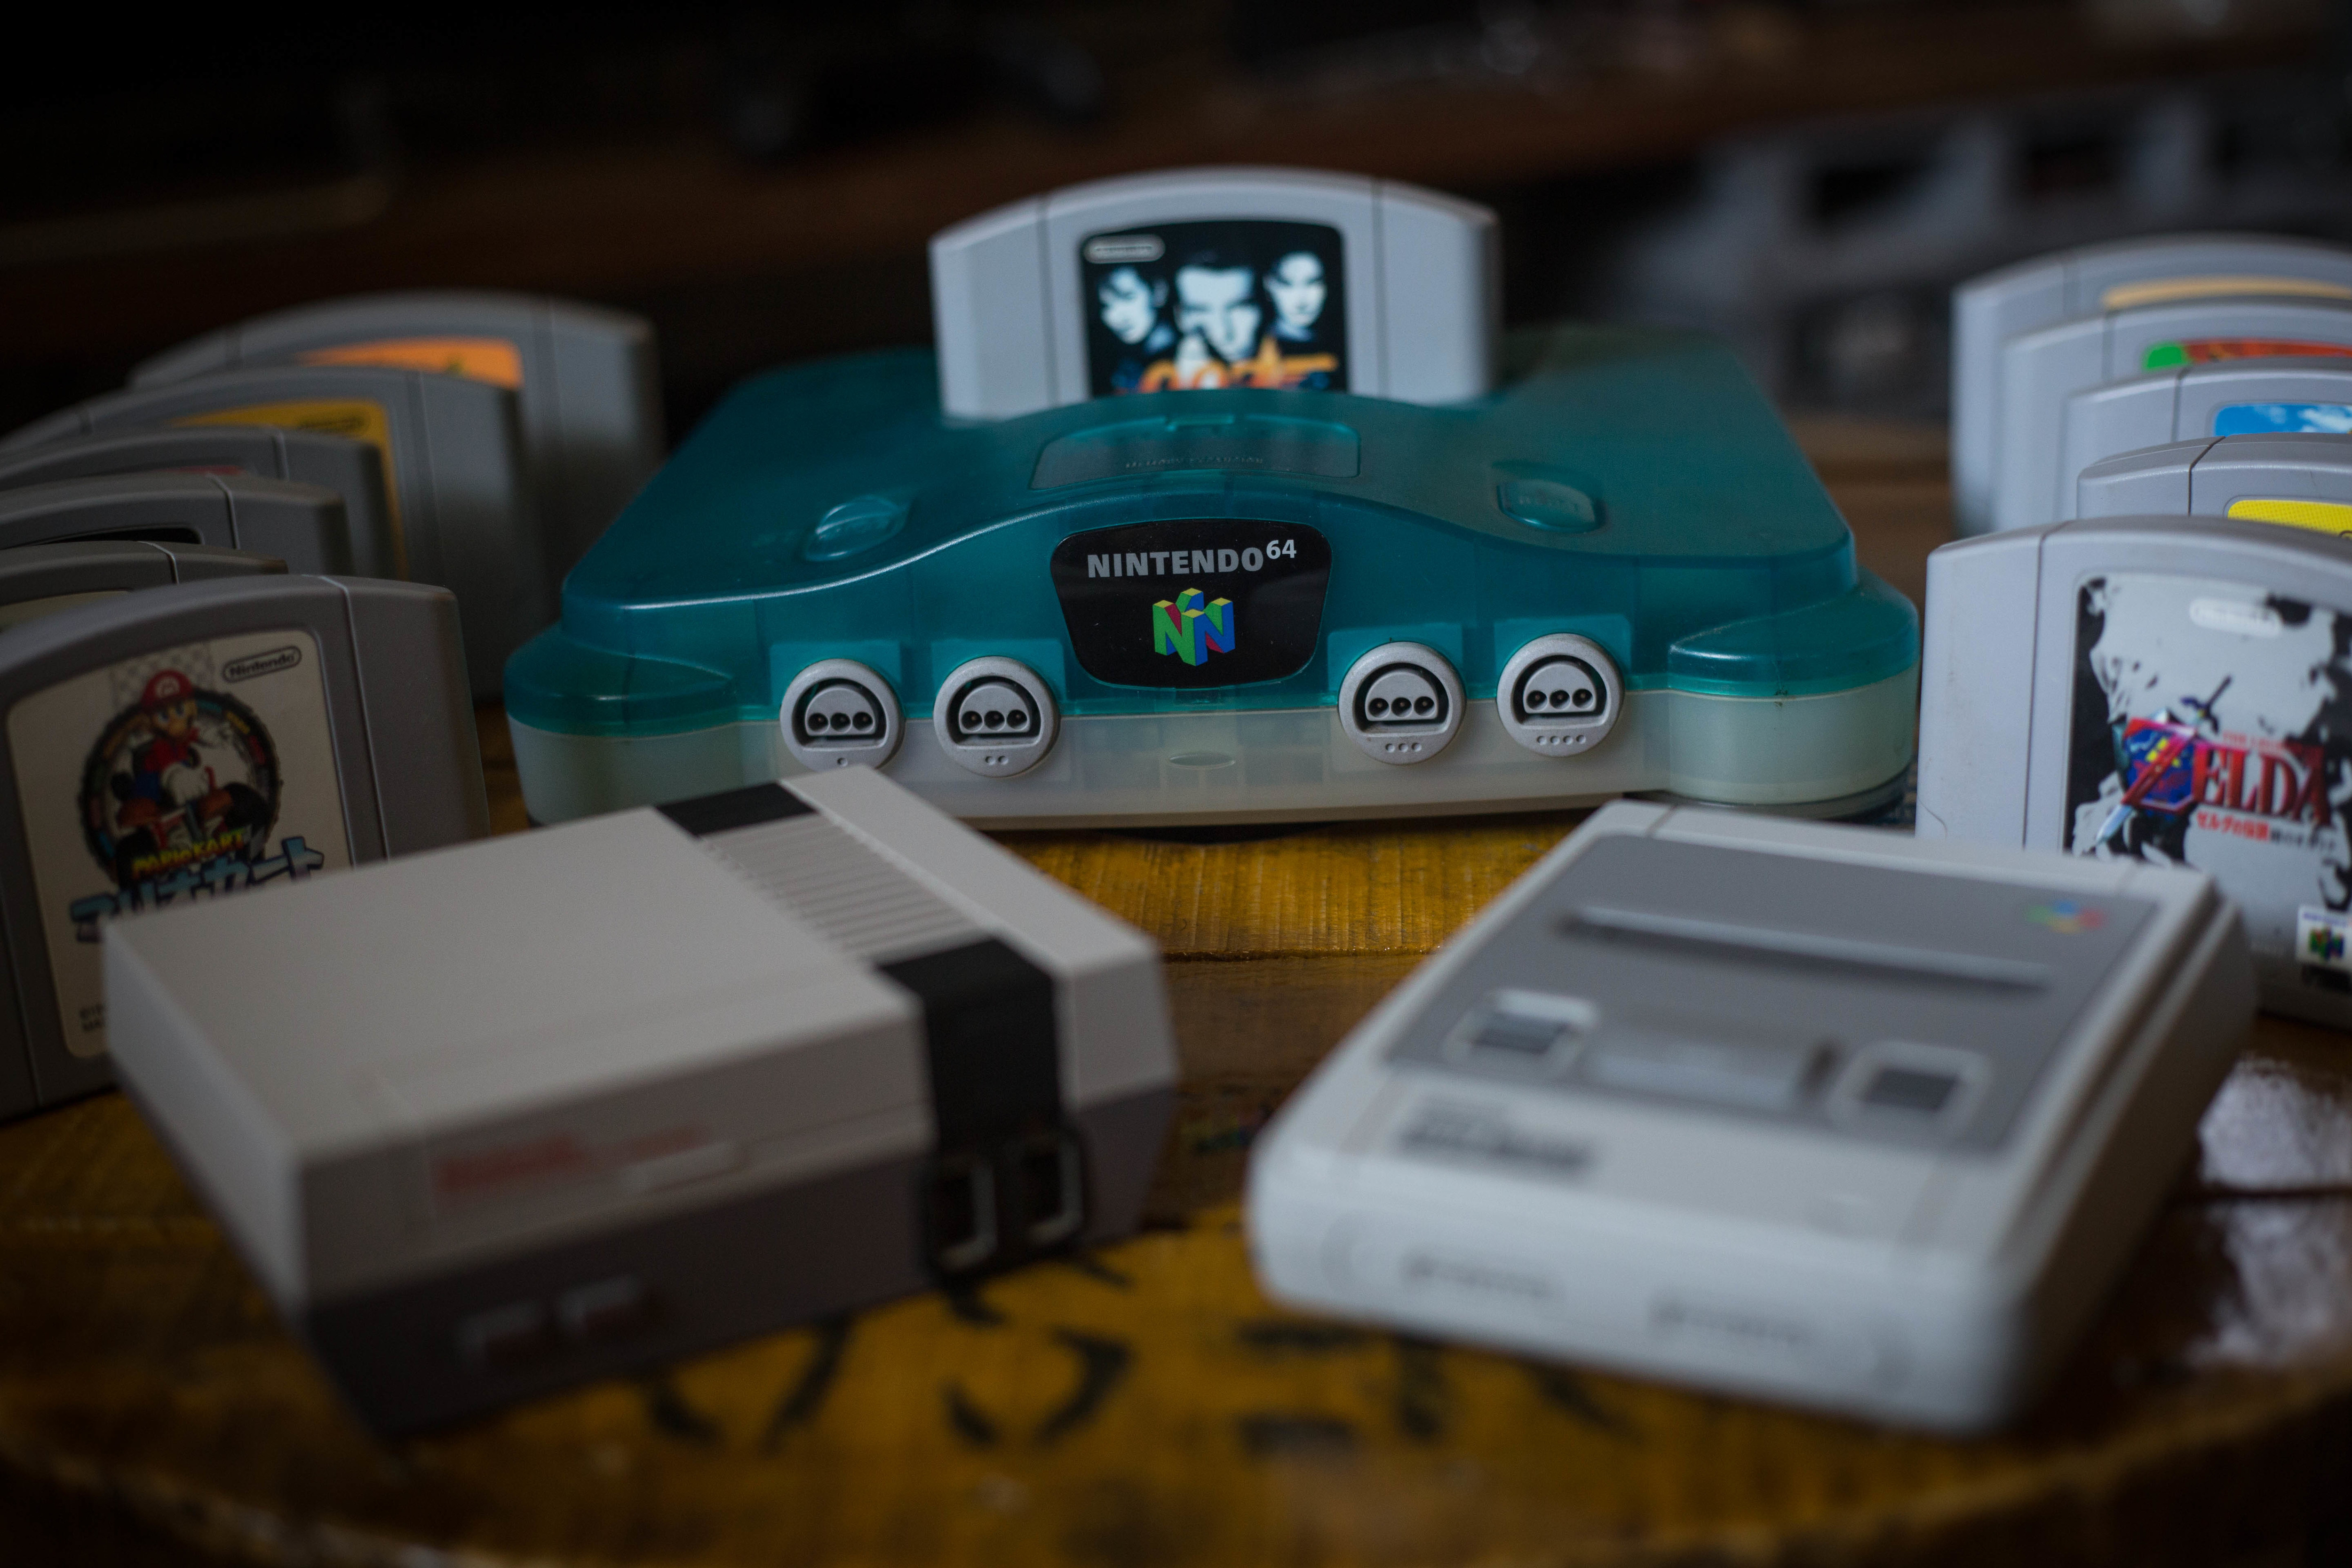 A Japanese edition of the Nintendo 64 clear blue version (M